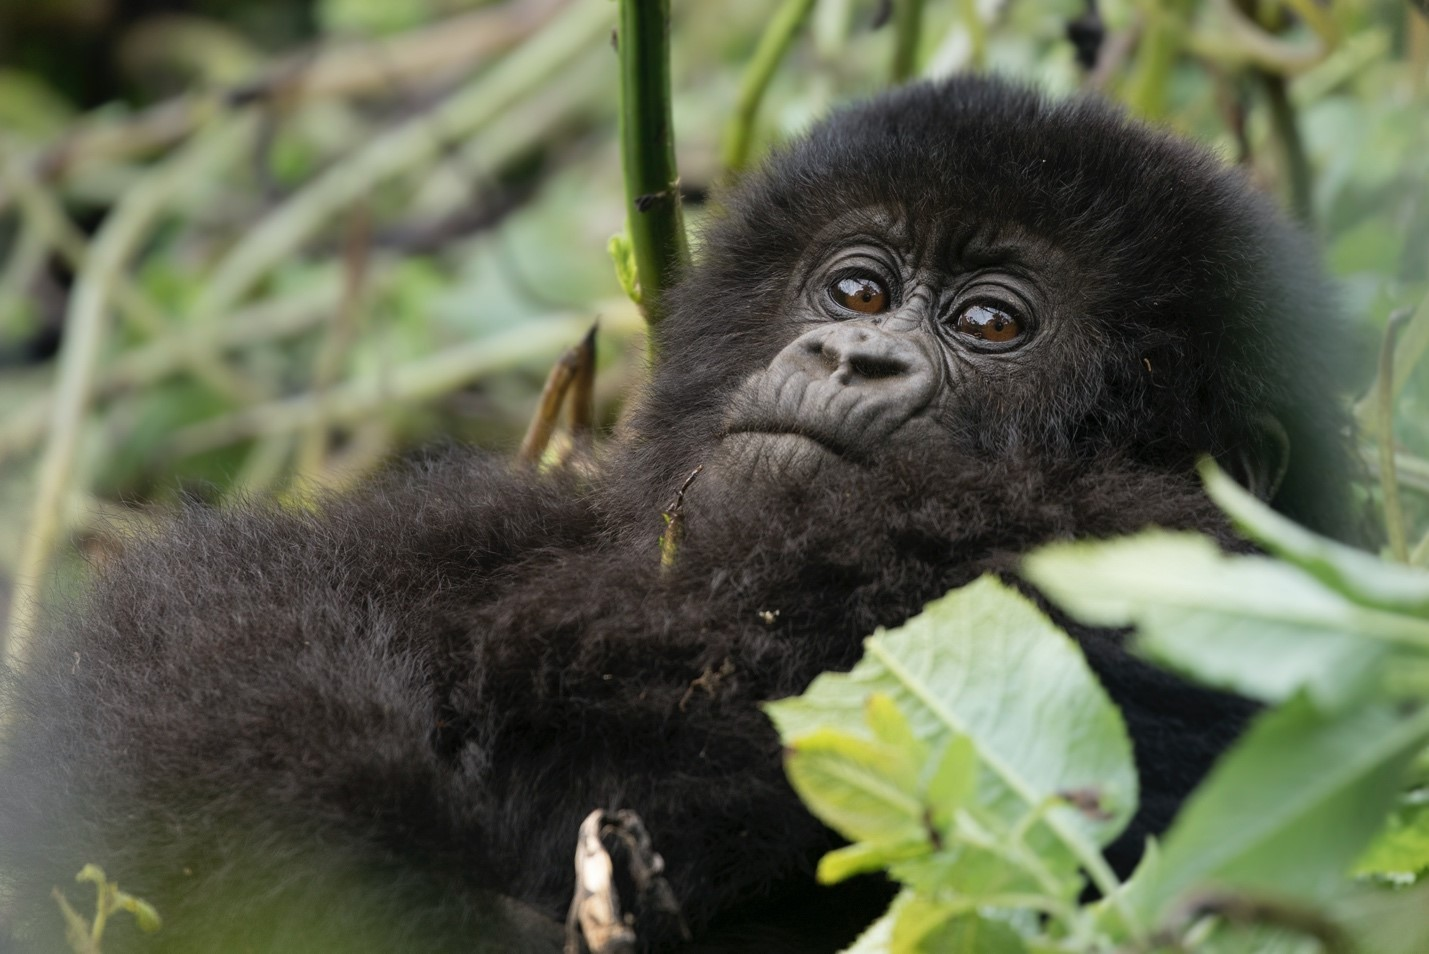 a young gorilla rests in the foliage of the jungle